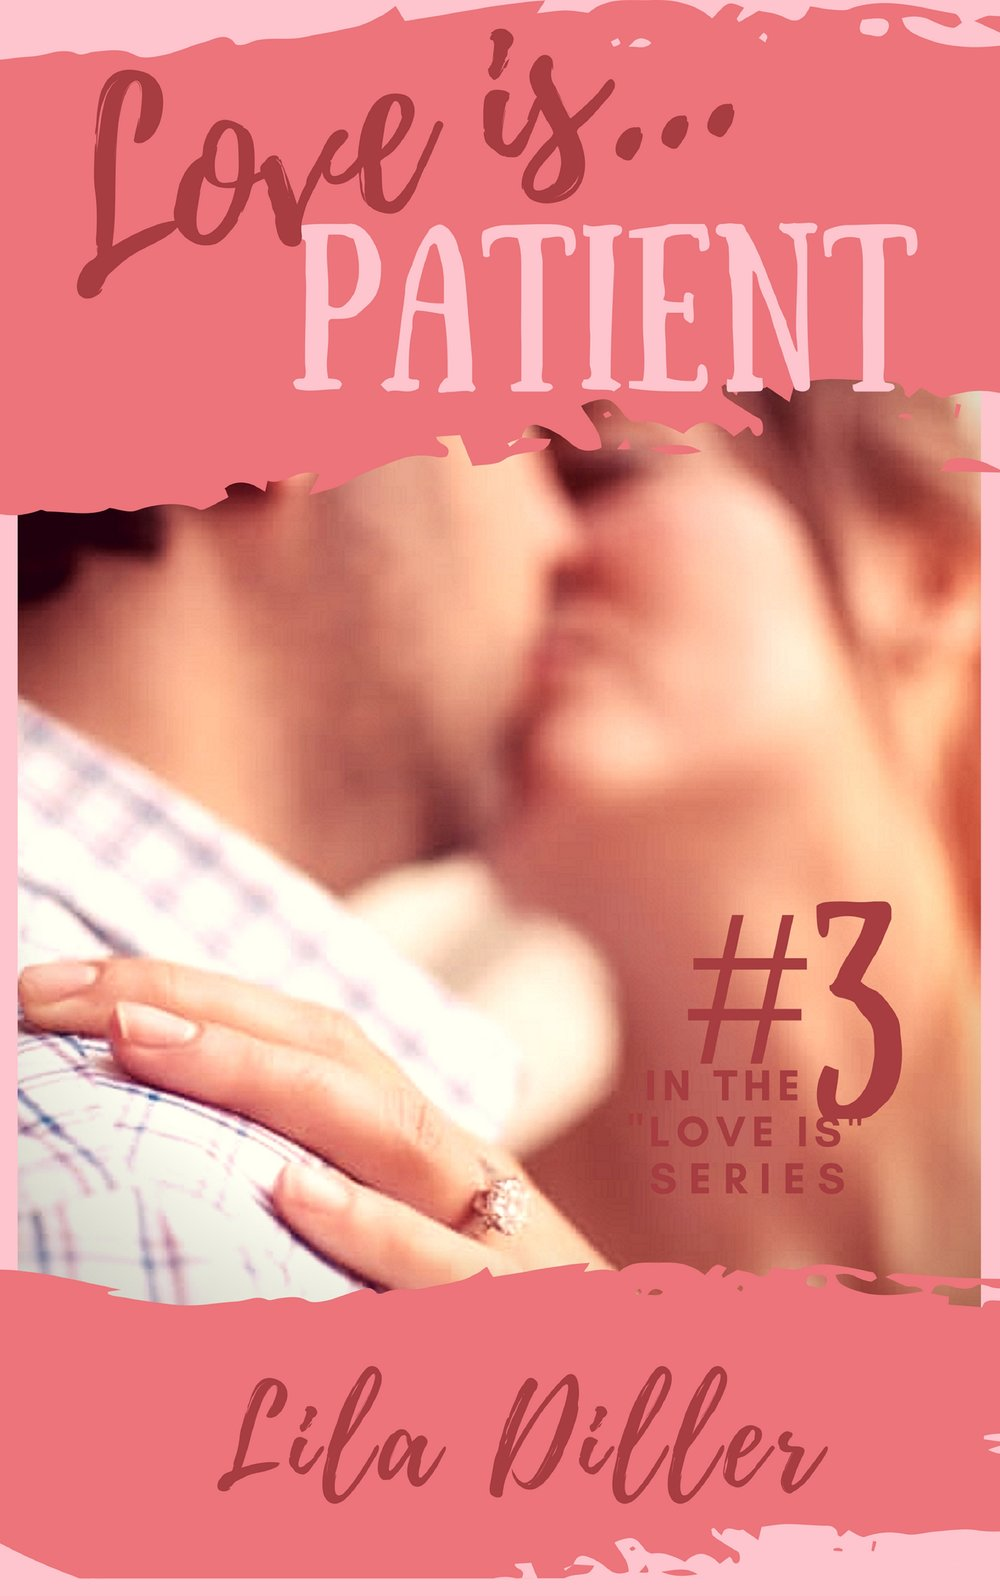 Love is Patient, Love is series #3